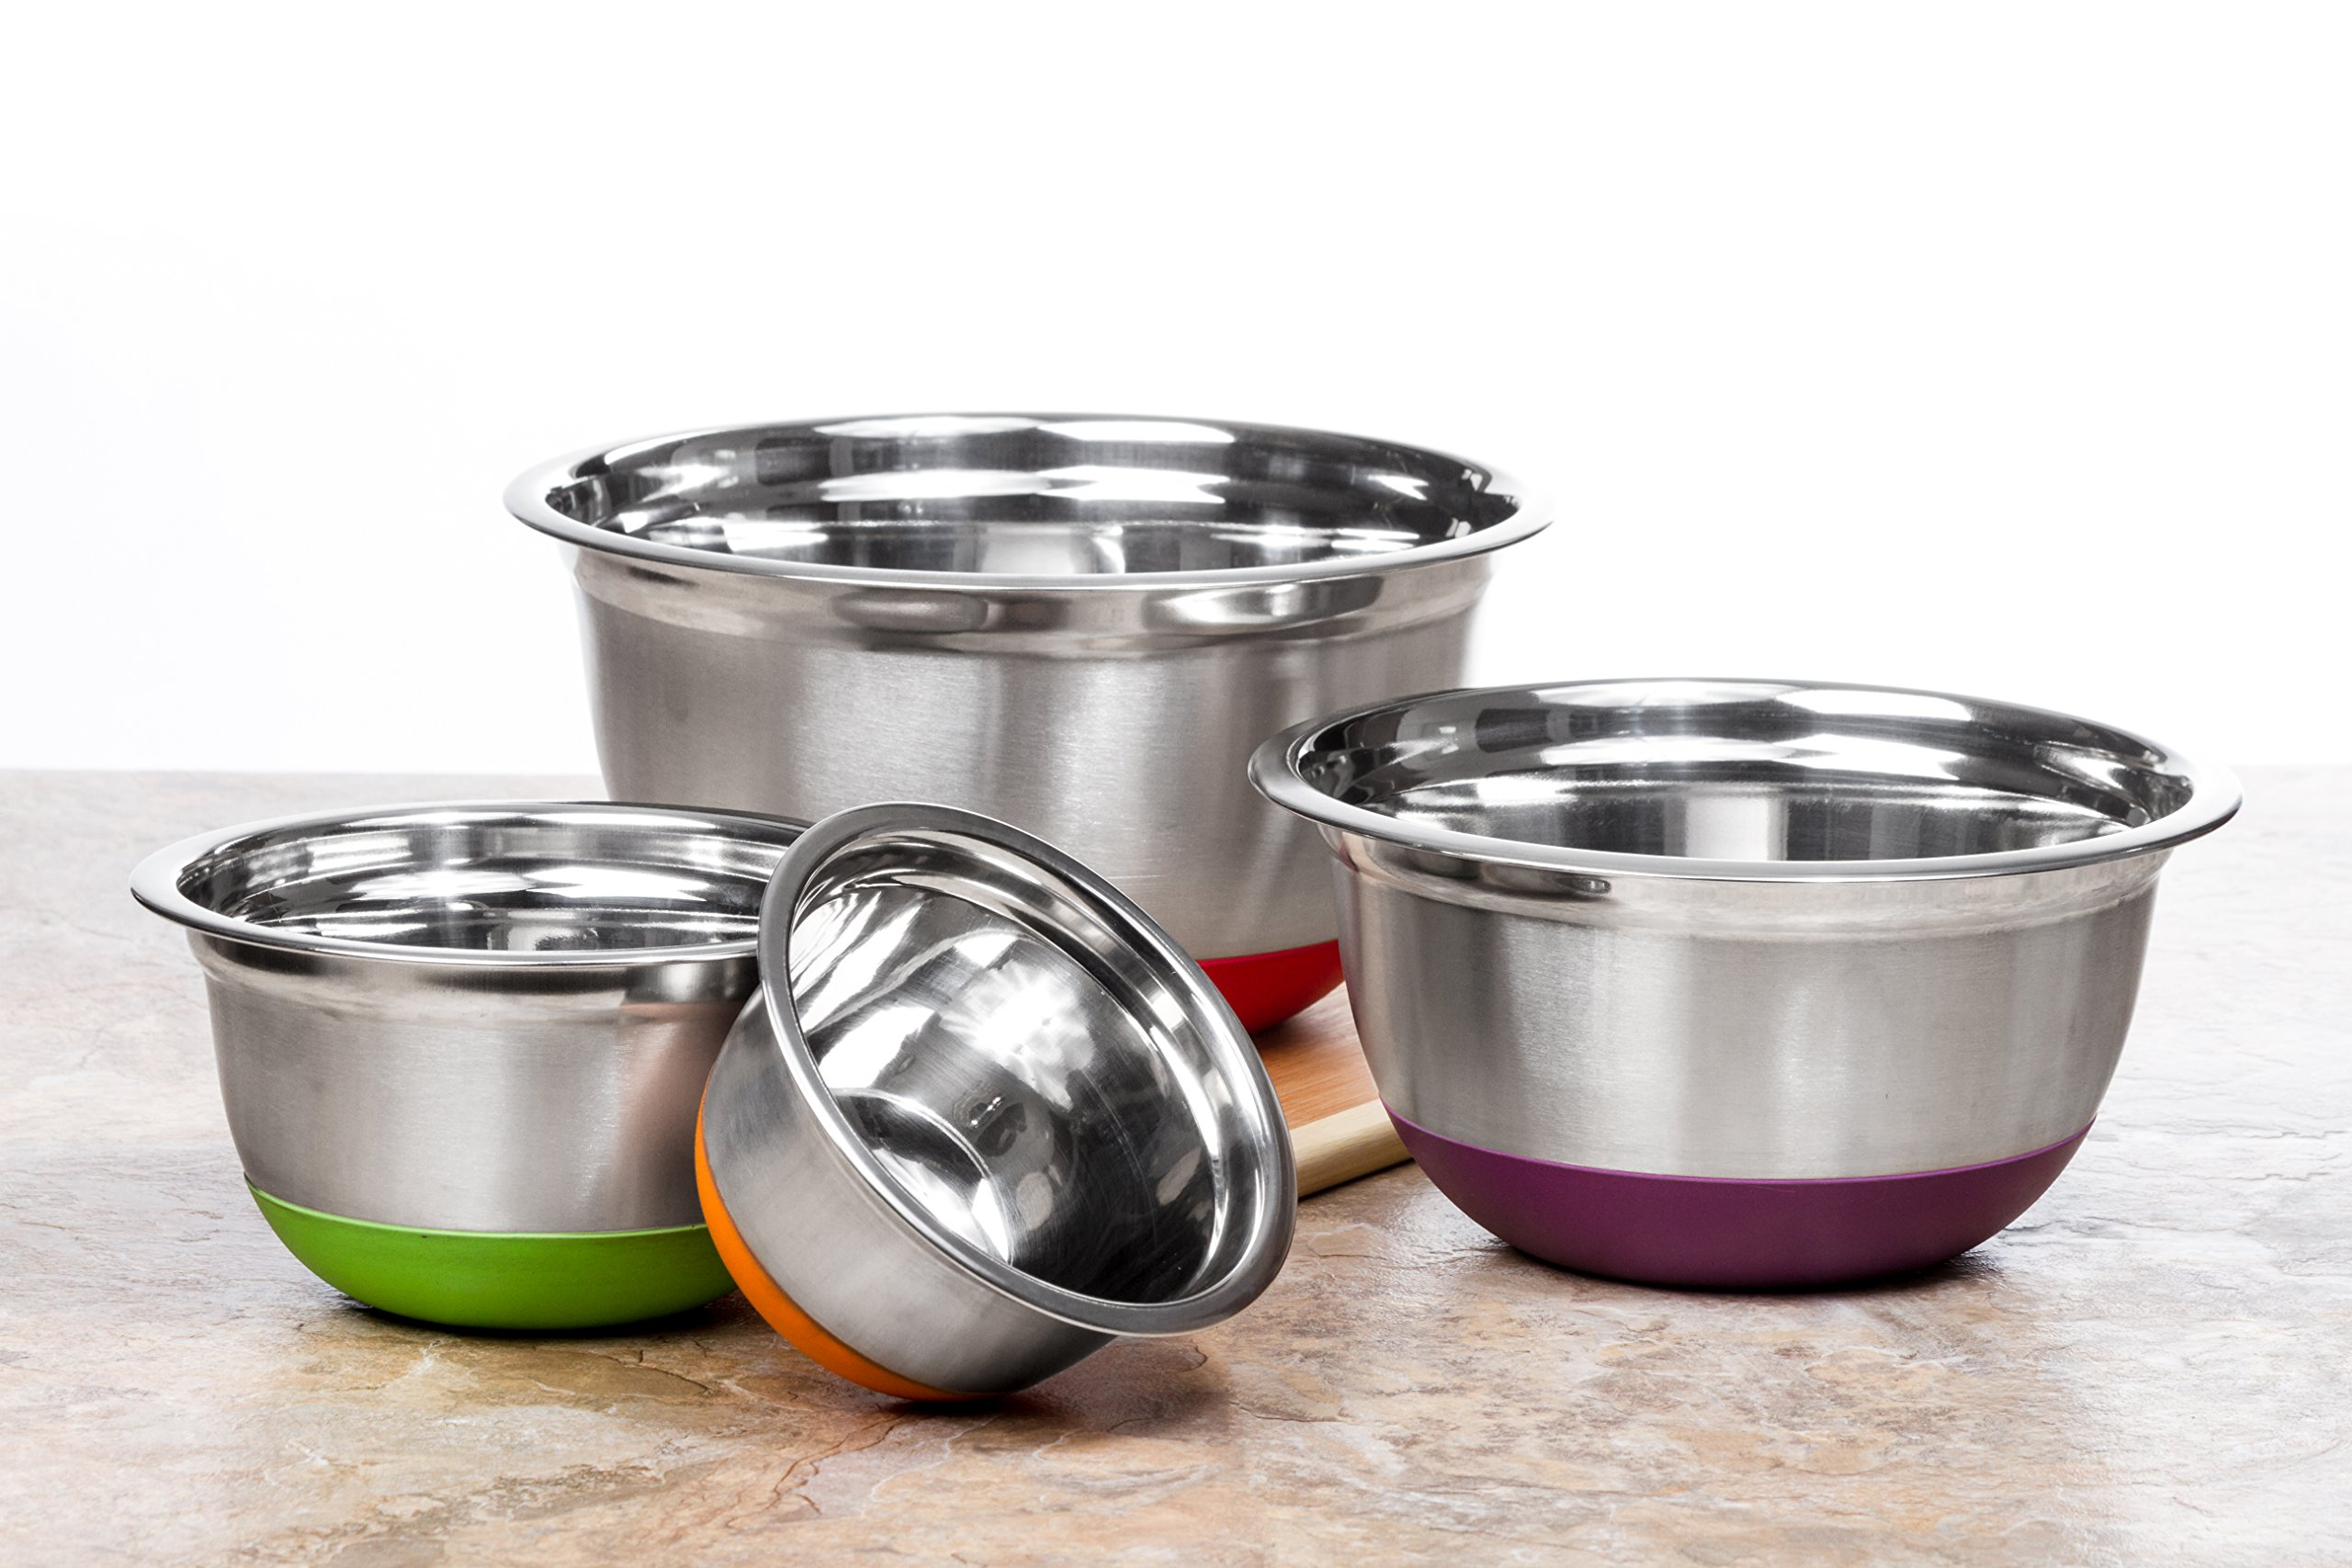 4 Pc Chef Quality Stainless Steel Mixing Bowls w/Colorful Silicone Bottoms - Prep Bowls or Mixing Bowl Set w/Non Skid Base by Imperial Home